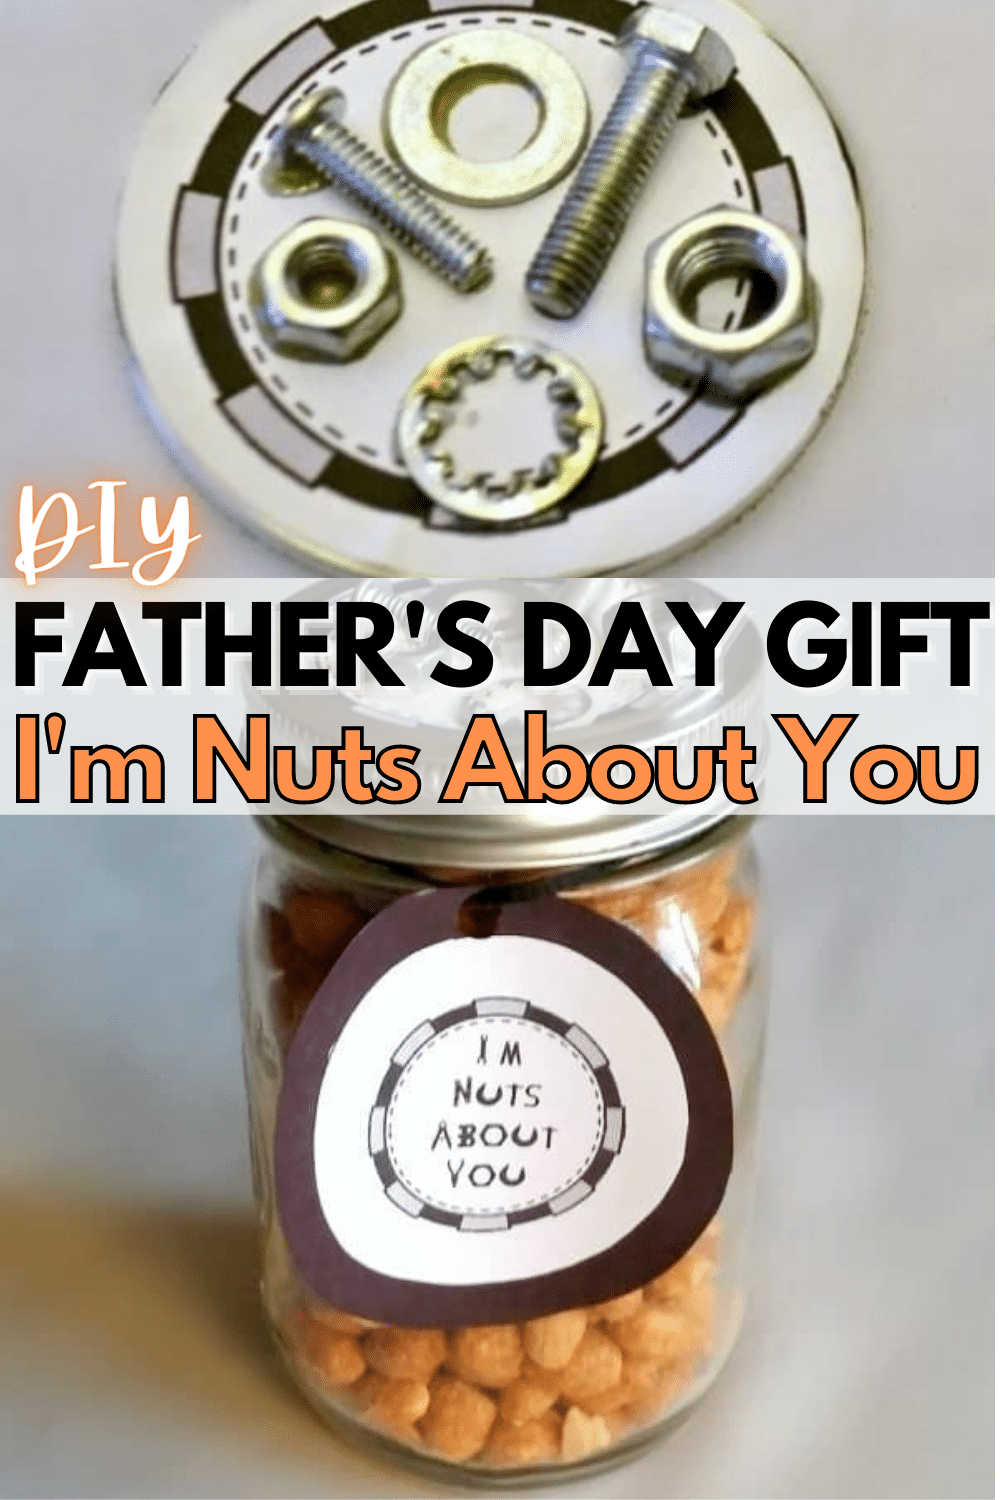 """Even if you're not much of a crafter, you can make this easy gift. It's a fun DIY Father's Day gift that tells your husband """"I'm Nuts About You!"""" #diy #fathersday #fathersdaygift via @wondermomwannab"""